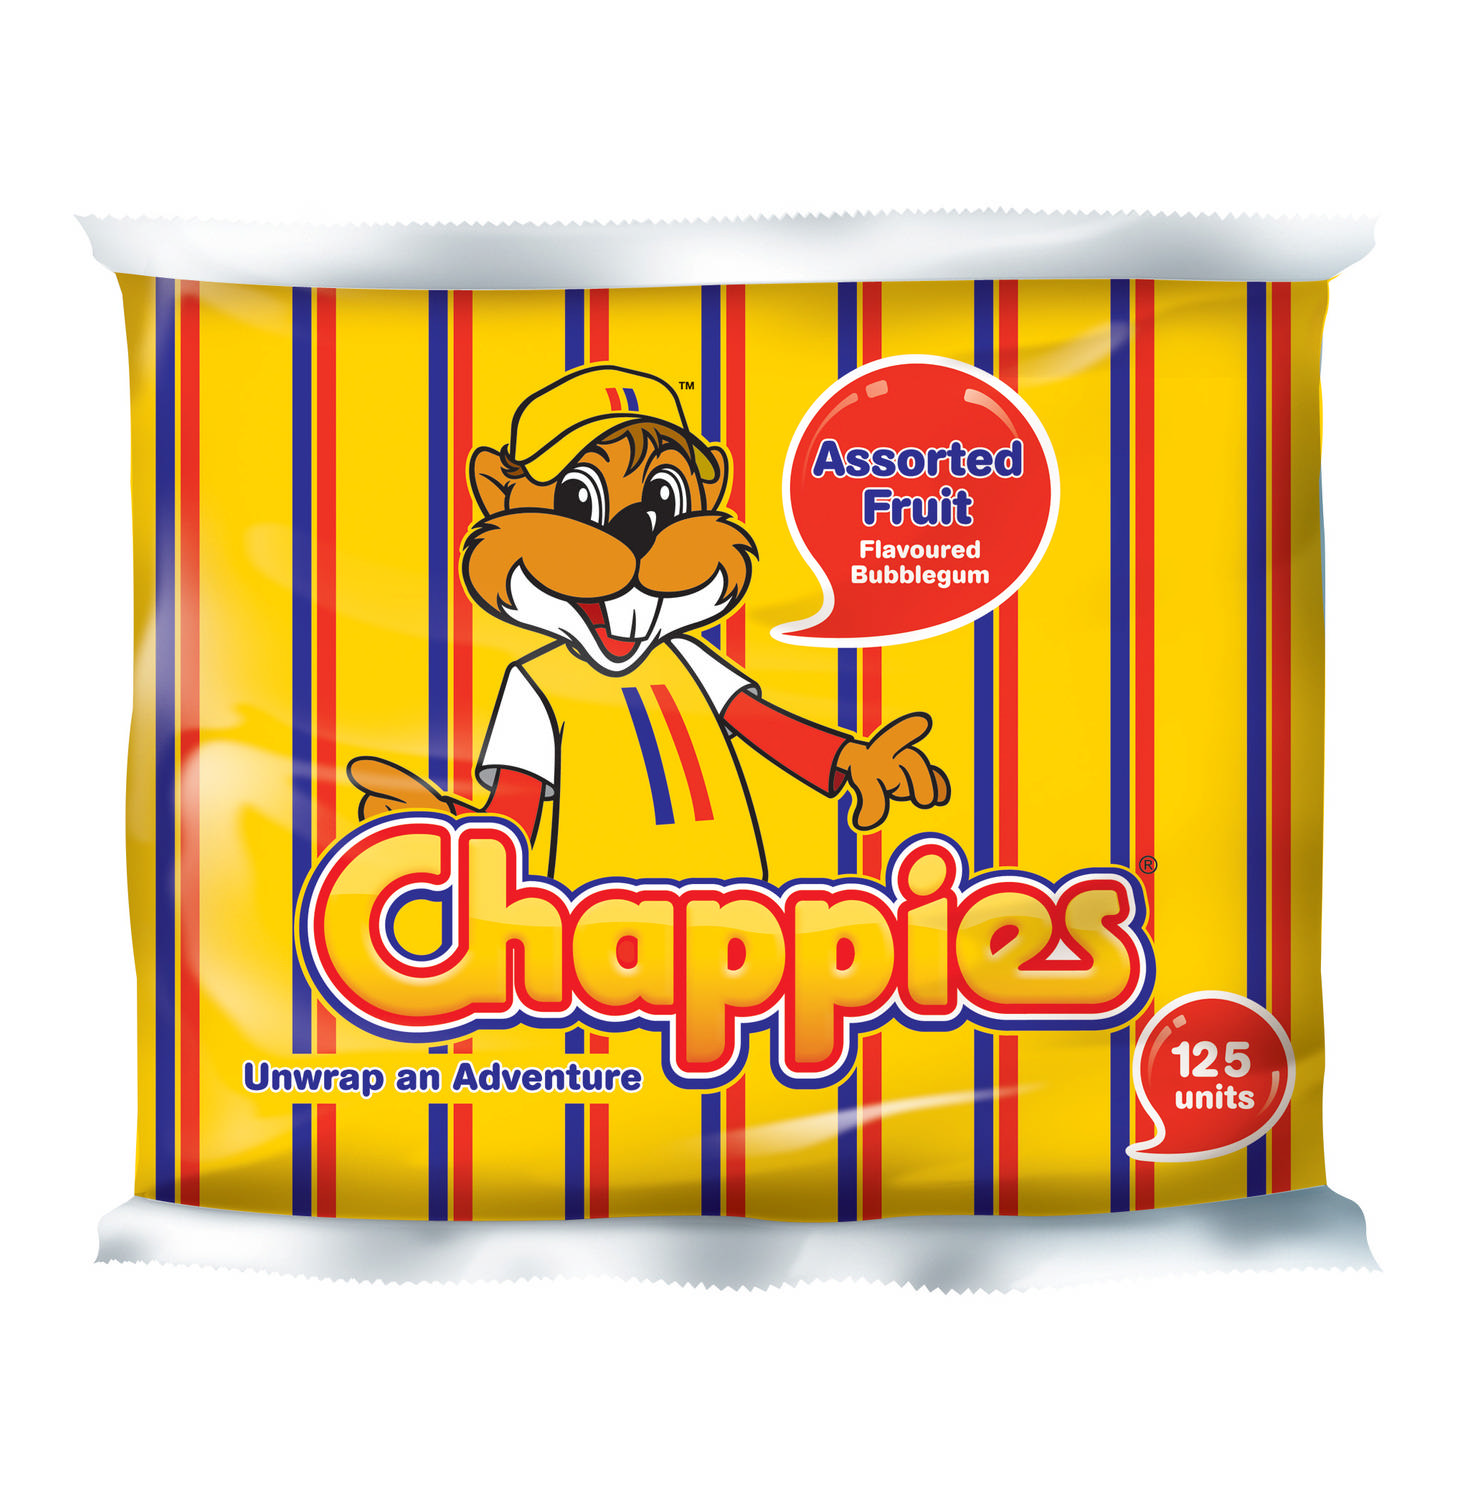 Chappies Fruit Bubblegu 125pc